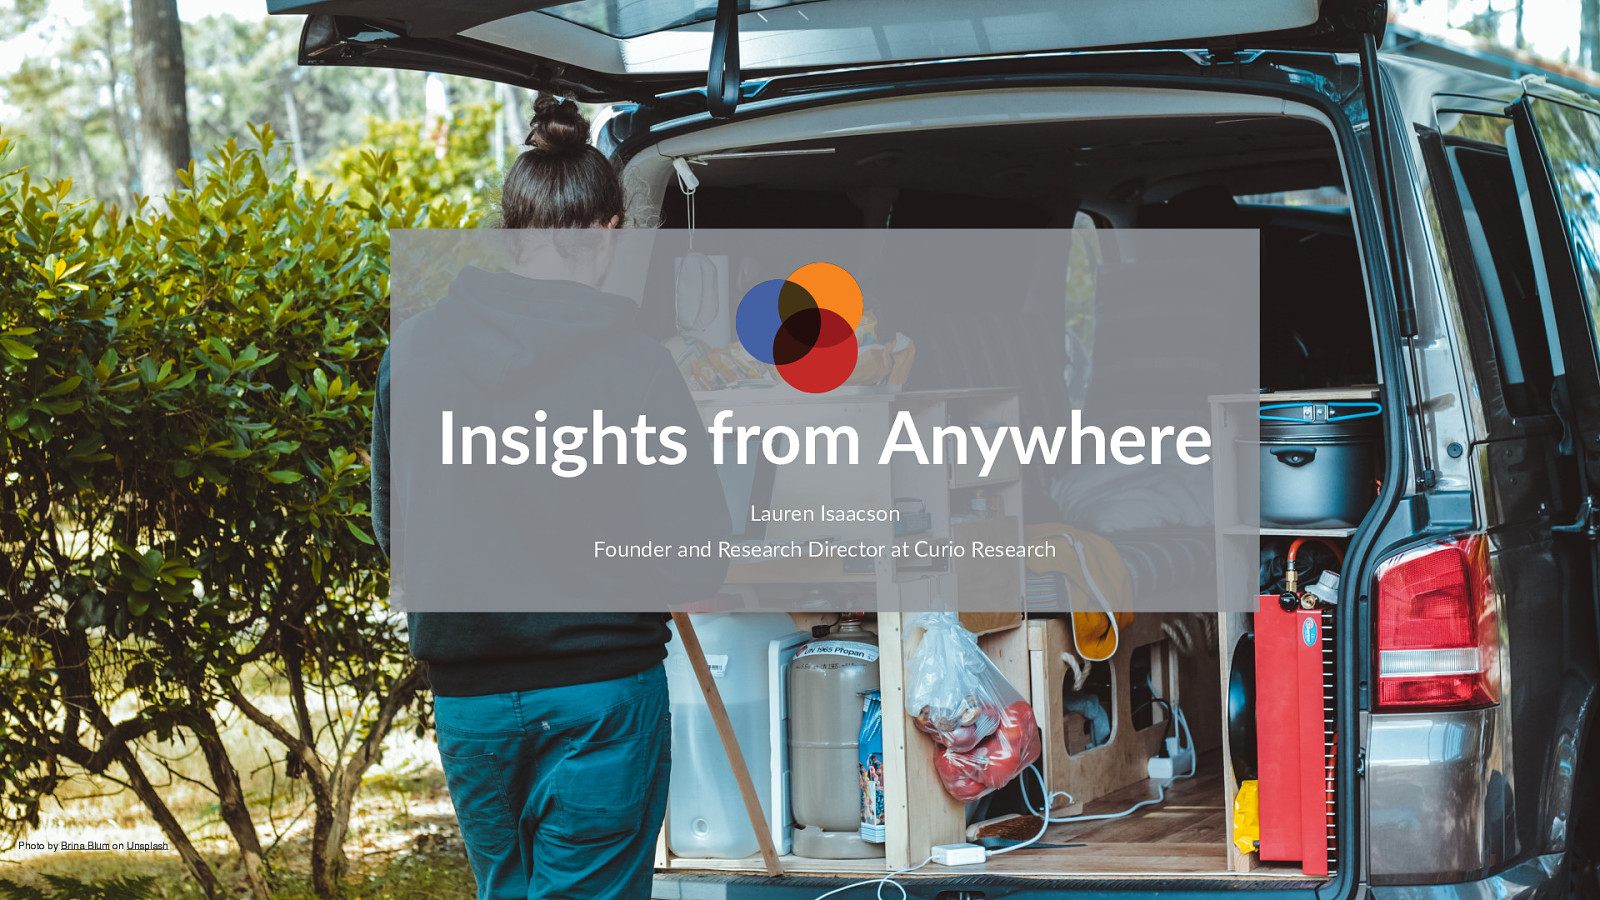 Insights from Anywhere